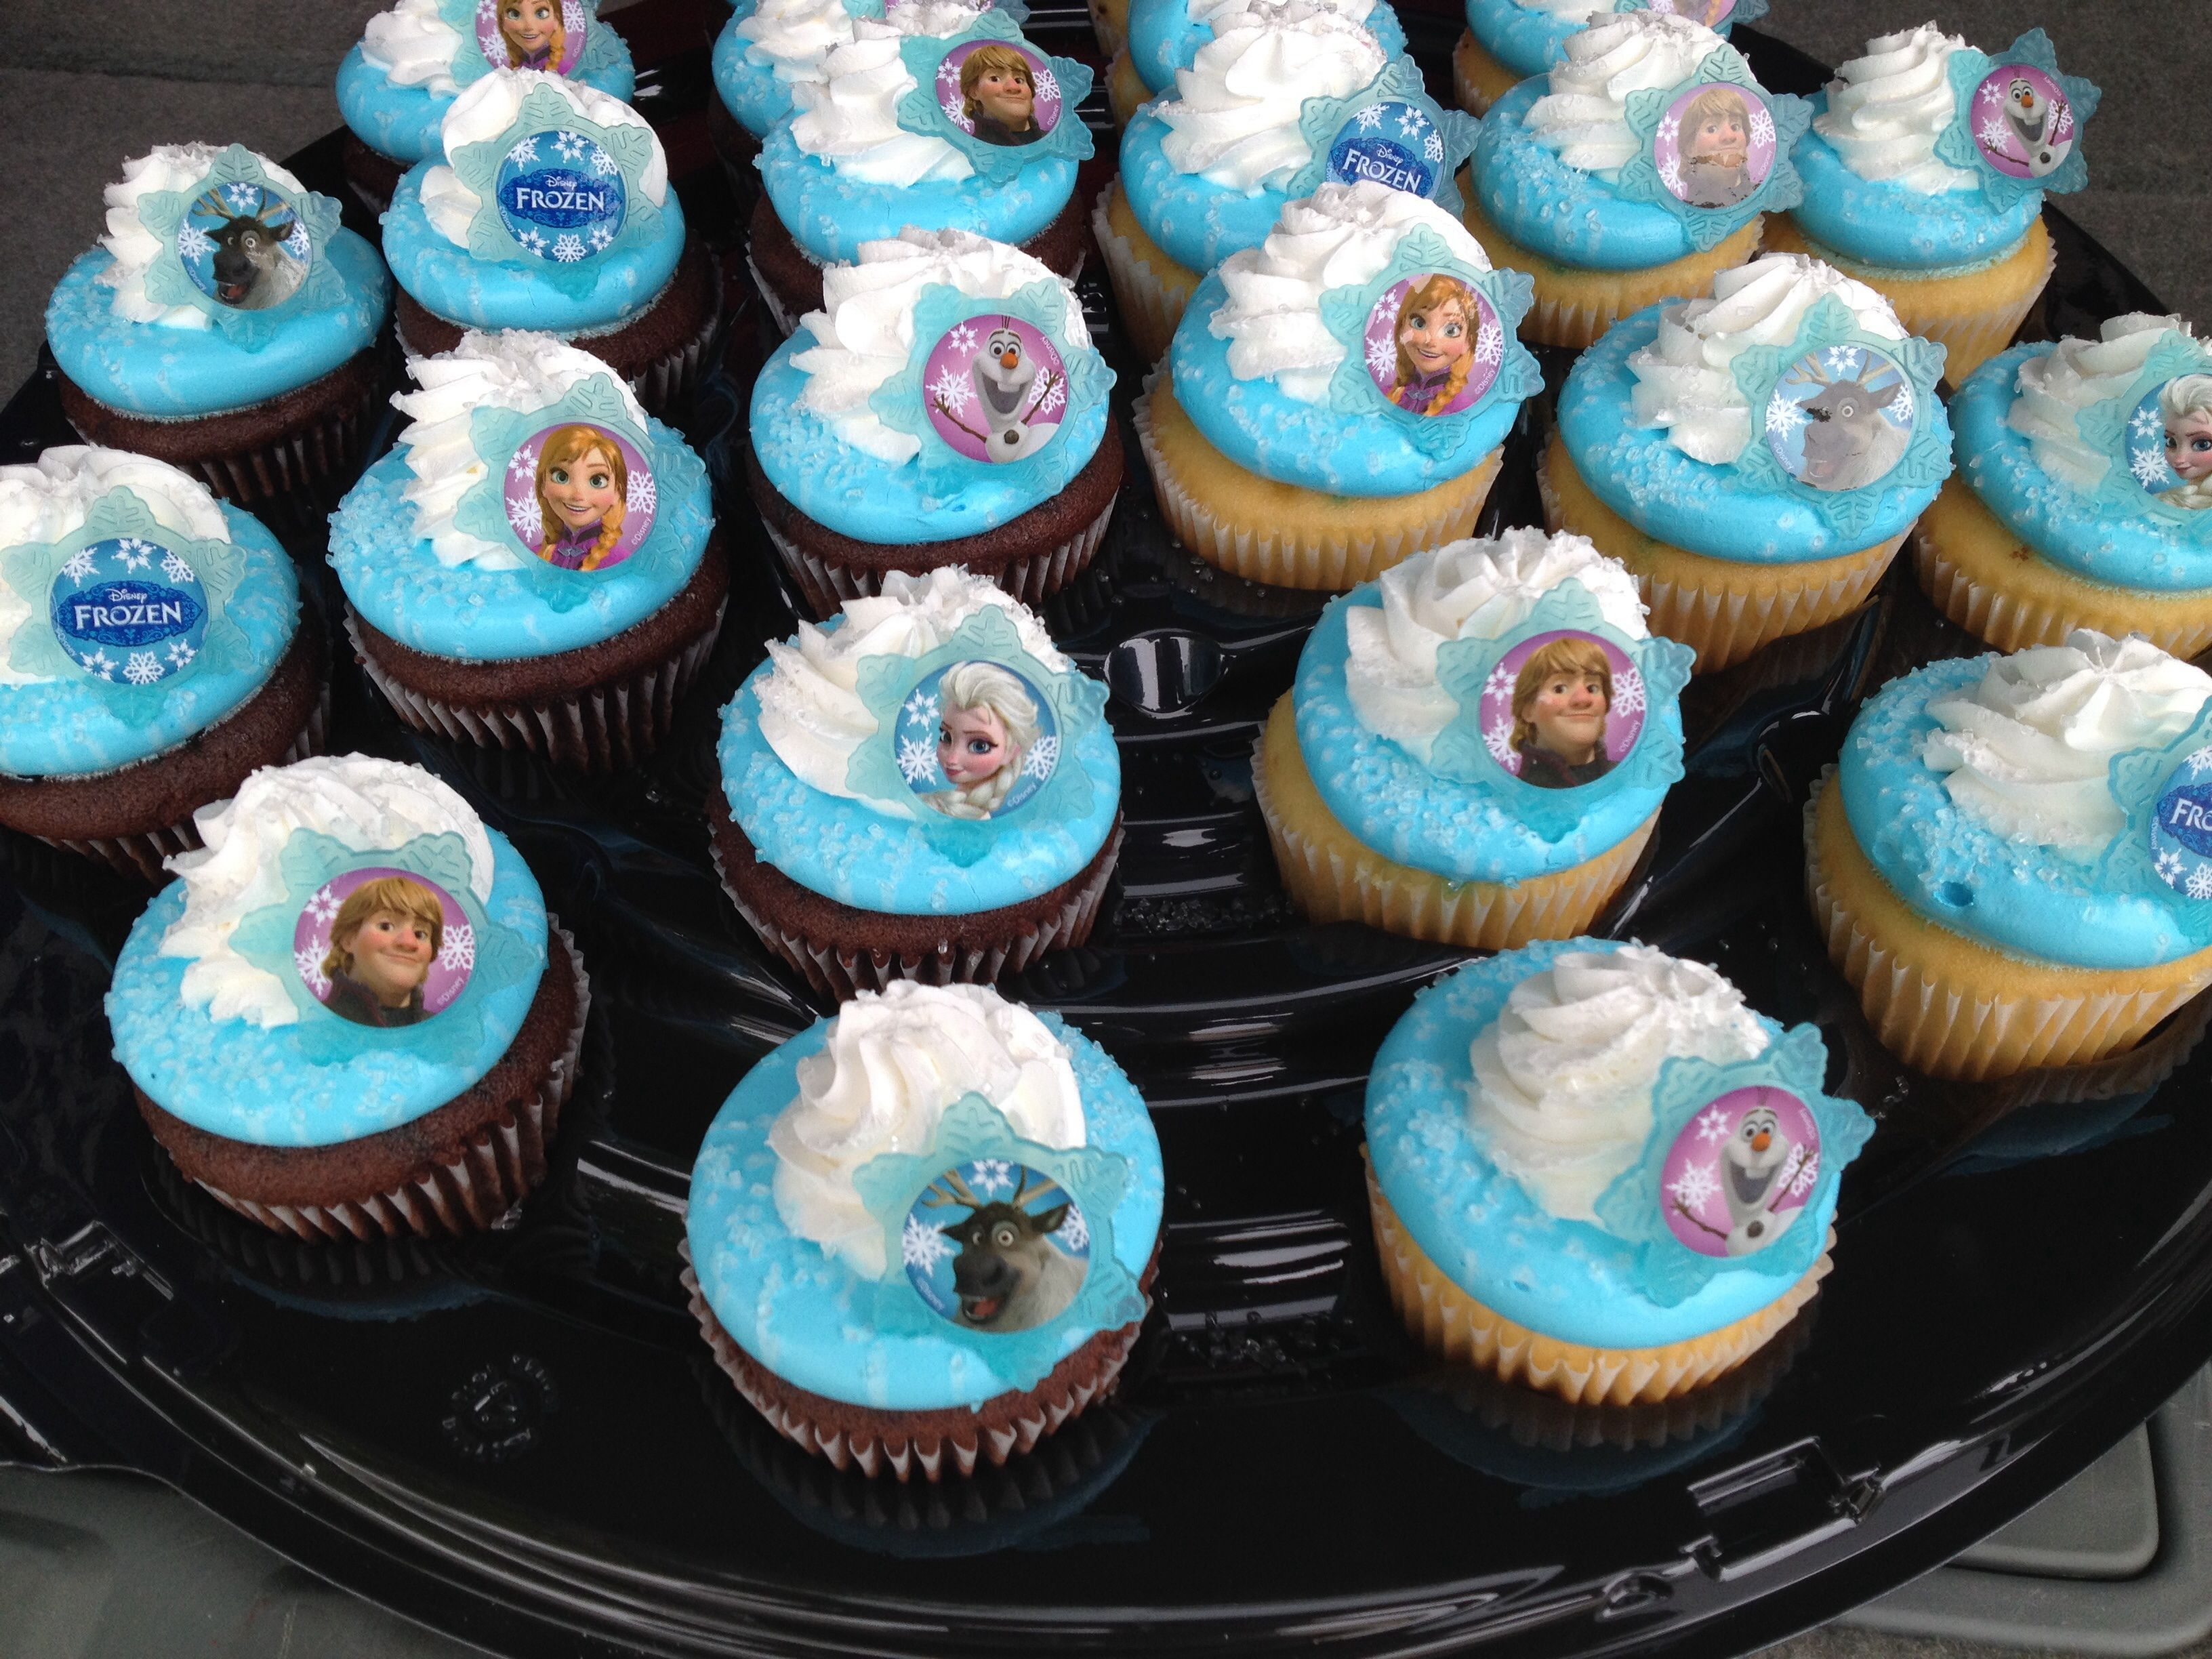 Disney Frozen Cupcakes From Walmart Lets Party